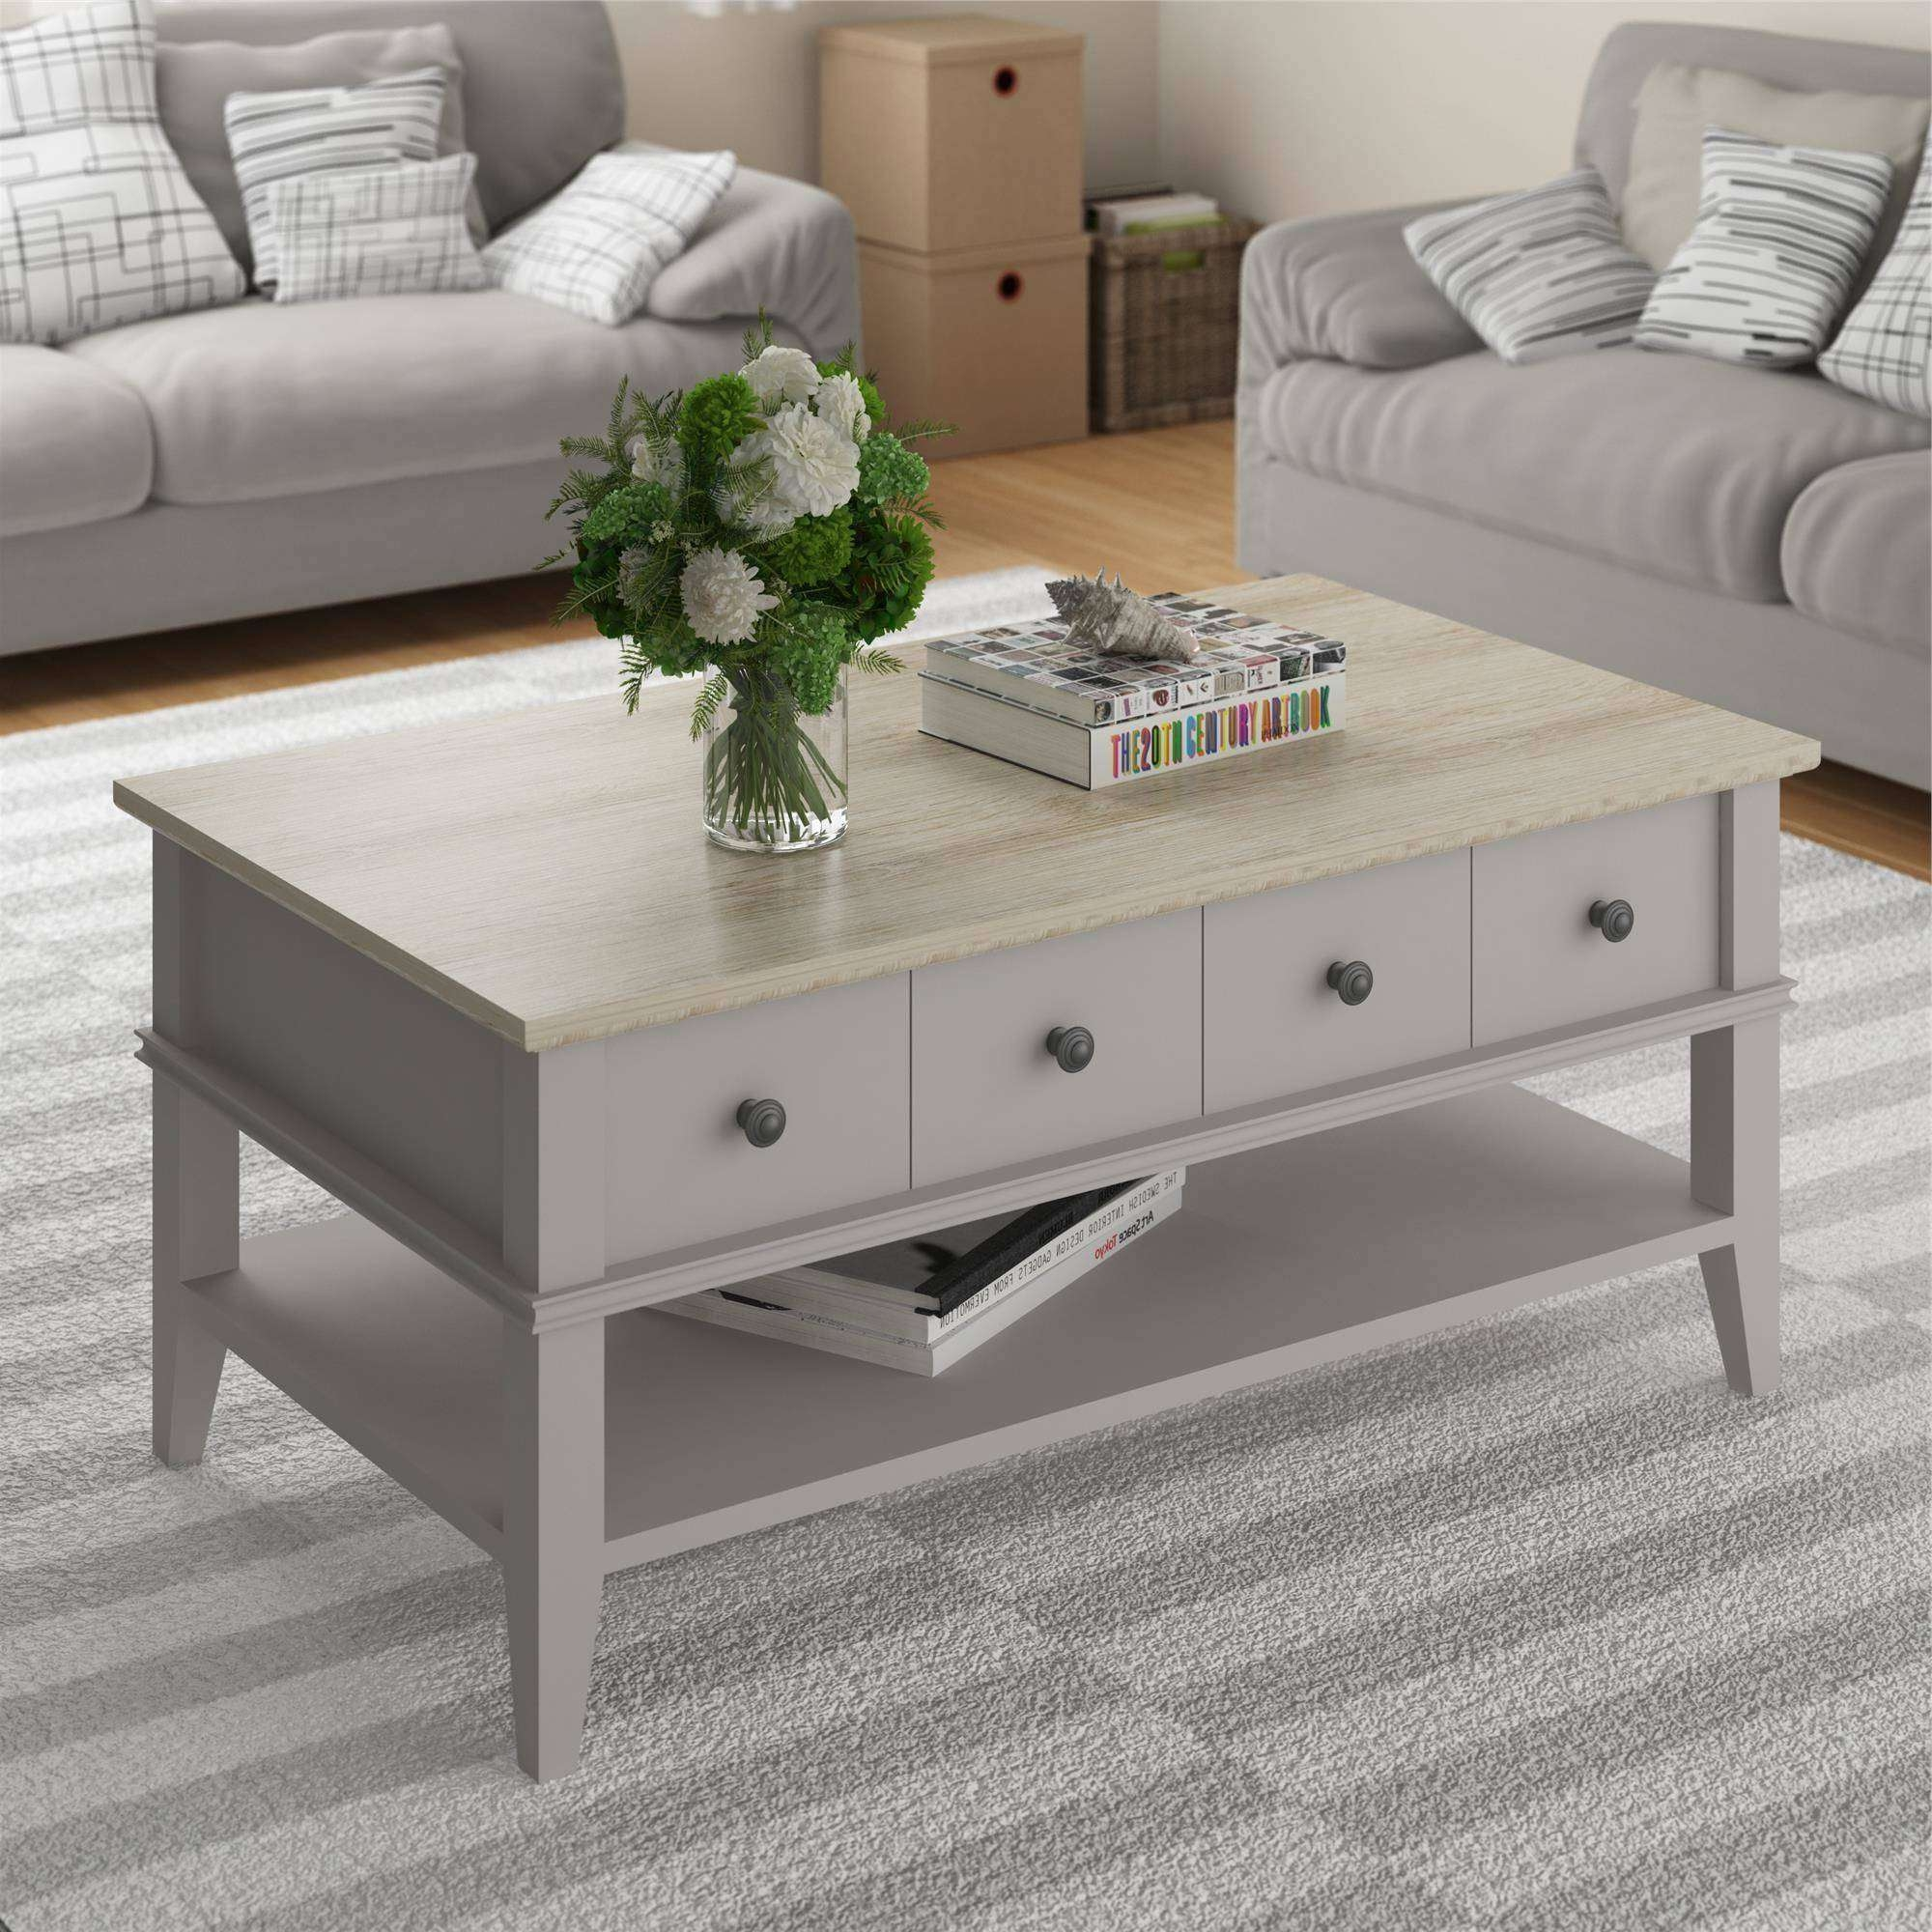 2017 Grey Coffee Tables Pertaining To Ameriwood Home Newport Coffee Table, Light Gray/light Brown (View 1 of 20)